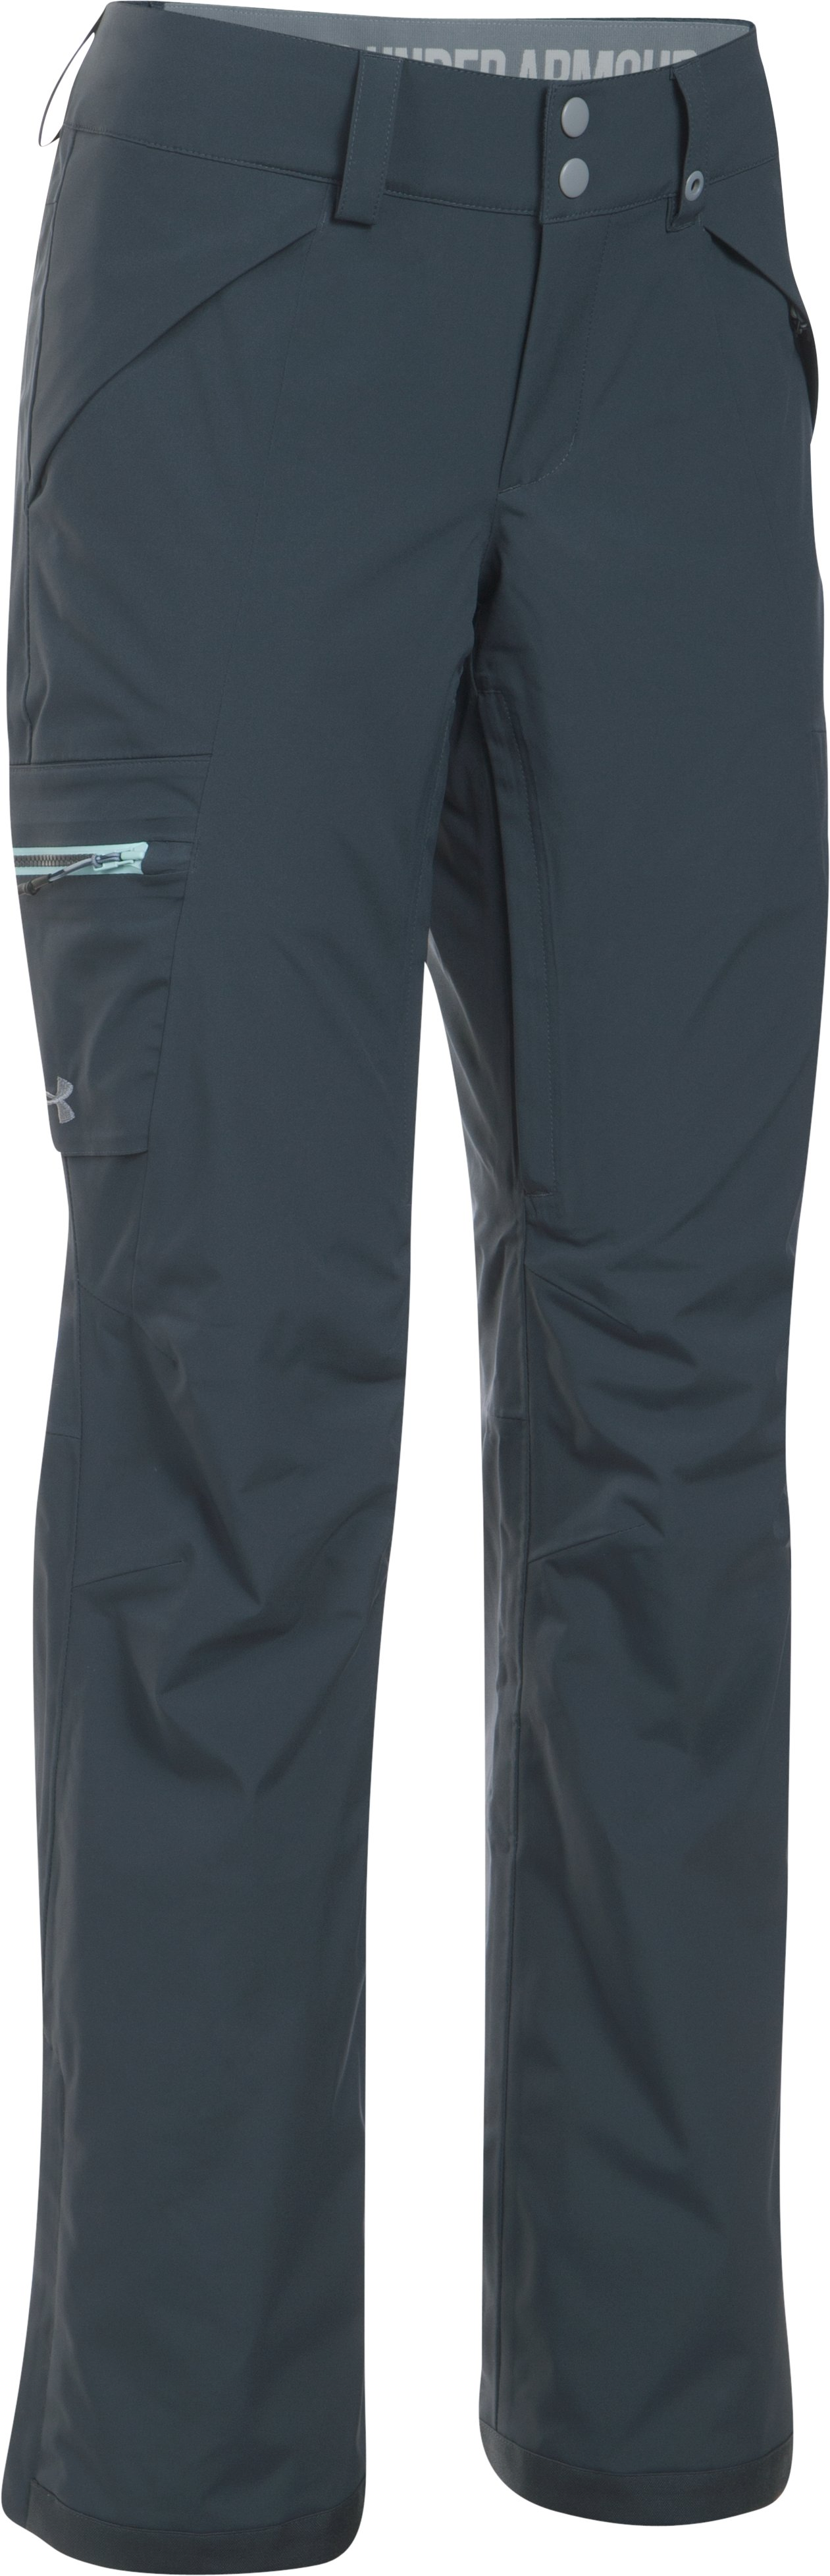 Women's UA ColdGear® Infrared Glades Pants, STEALTH GRAY